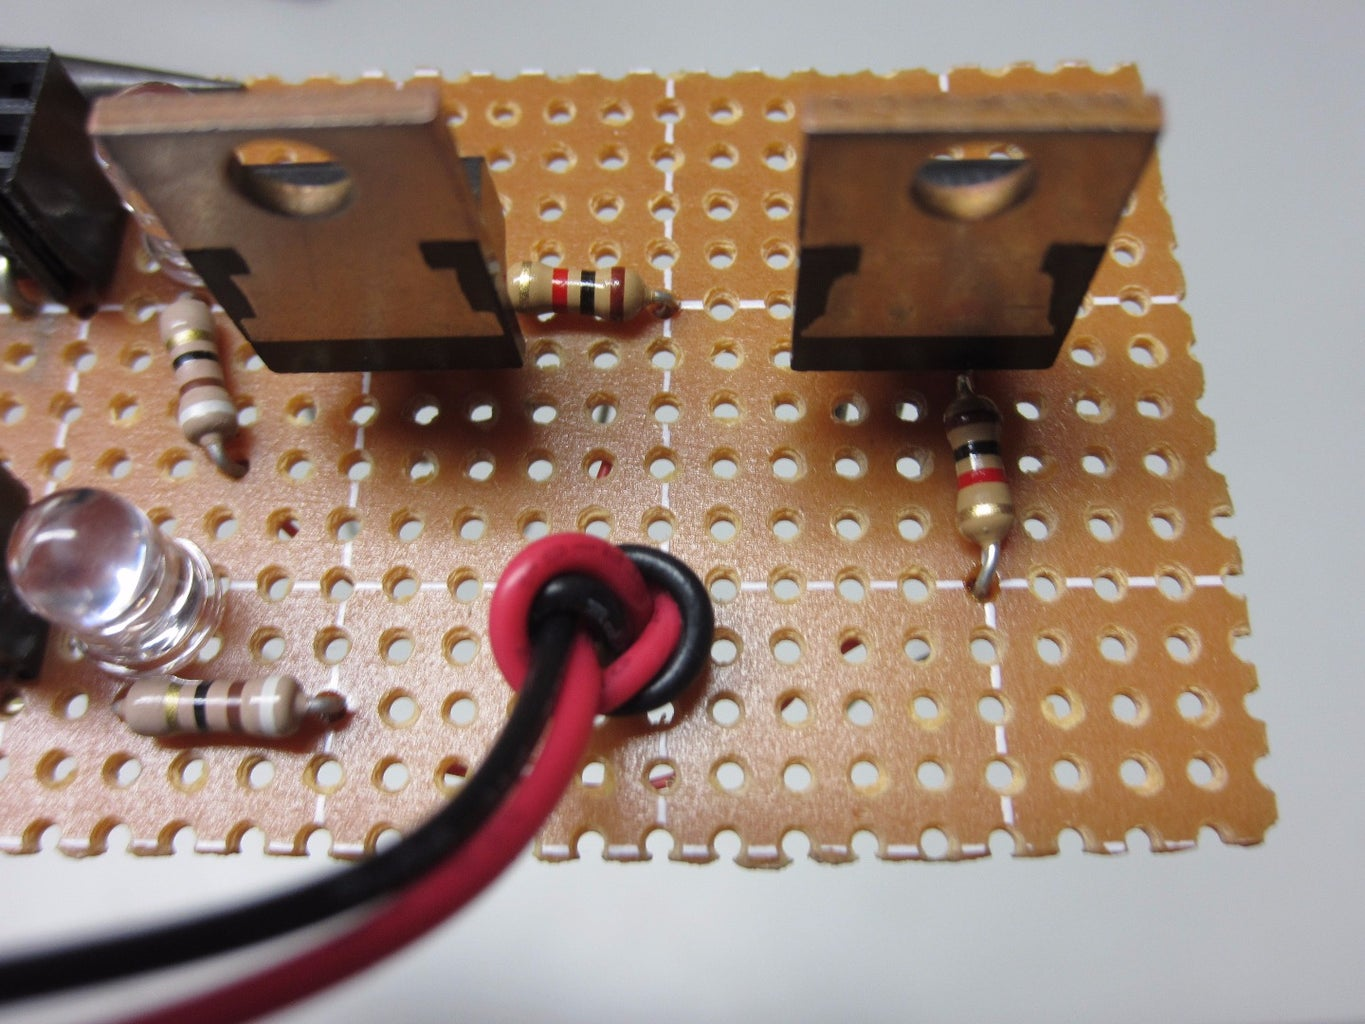 Solder on External Power Supply Wires